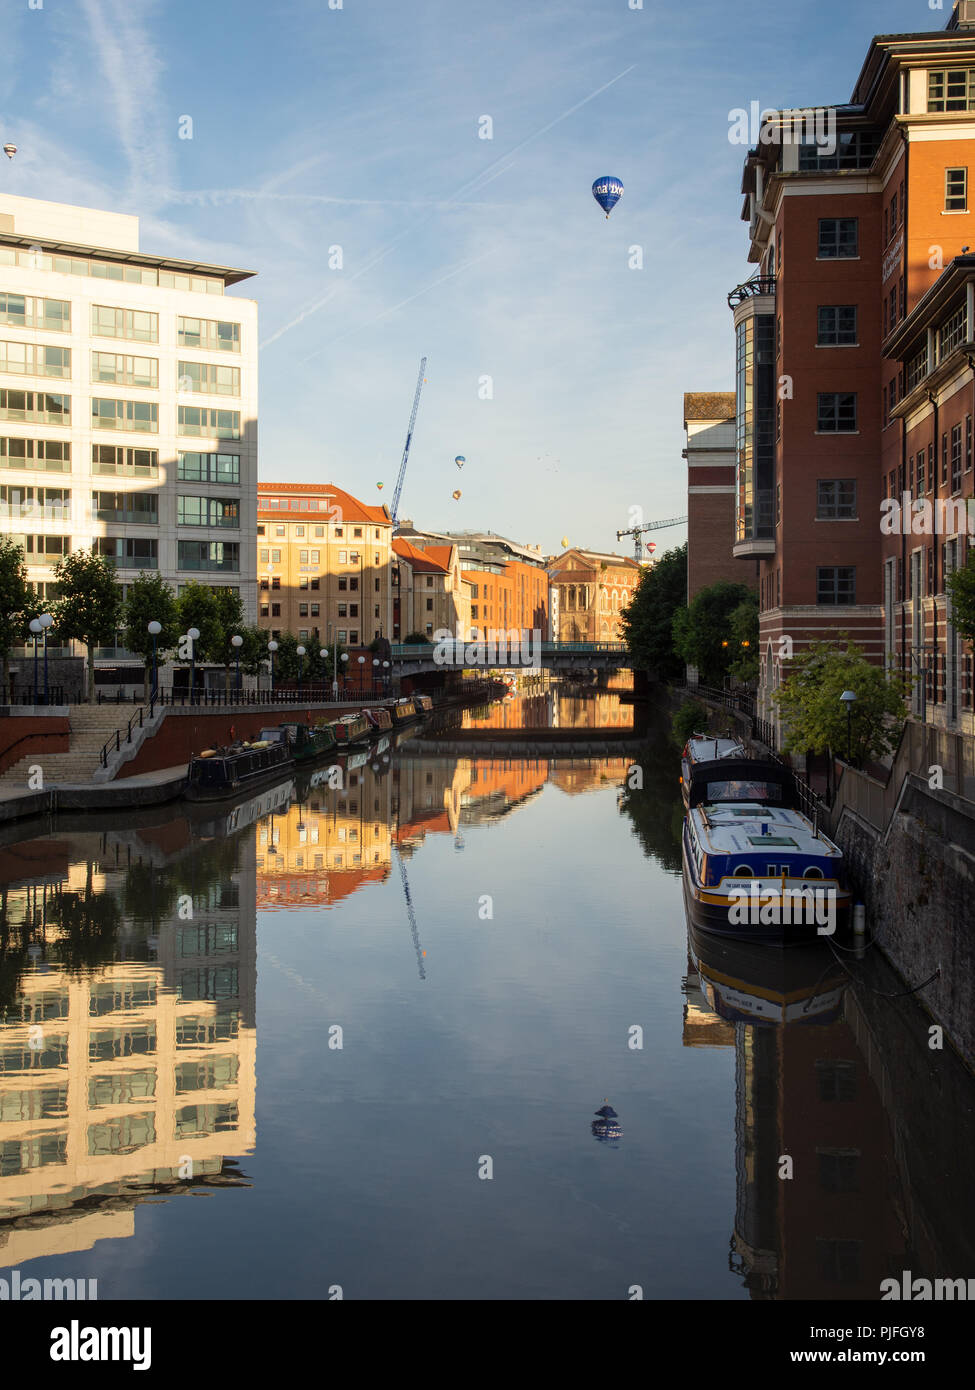 Bristol, England, UK - August 11, 2018: Hot air balloons fly above modern office buildings at Temple Quay on Bristol's Floating Harbour at dawn during - Stock Image